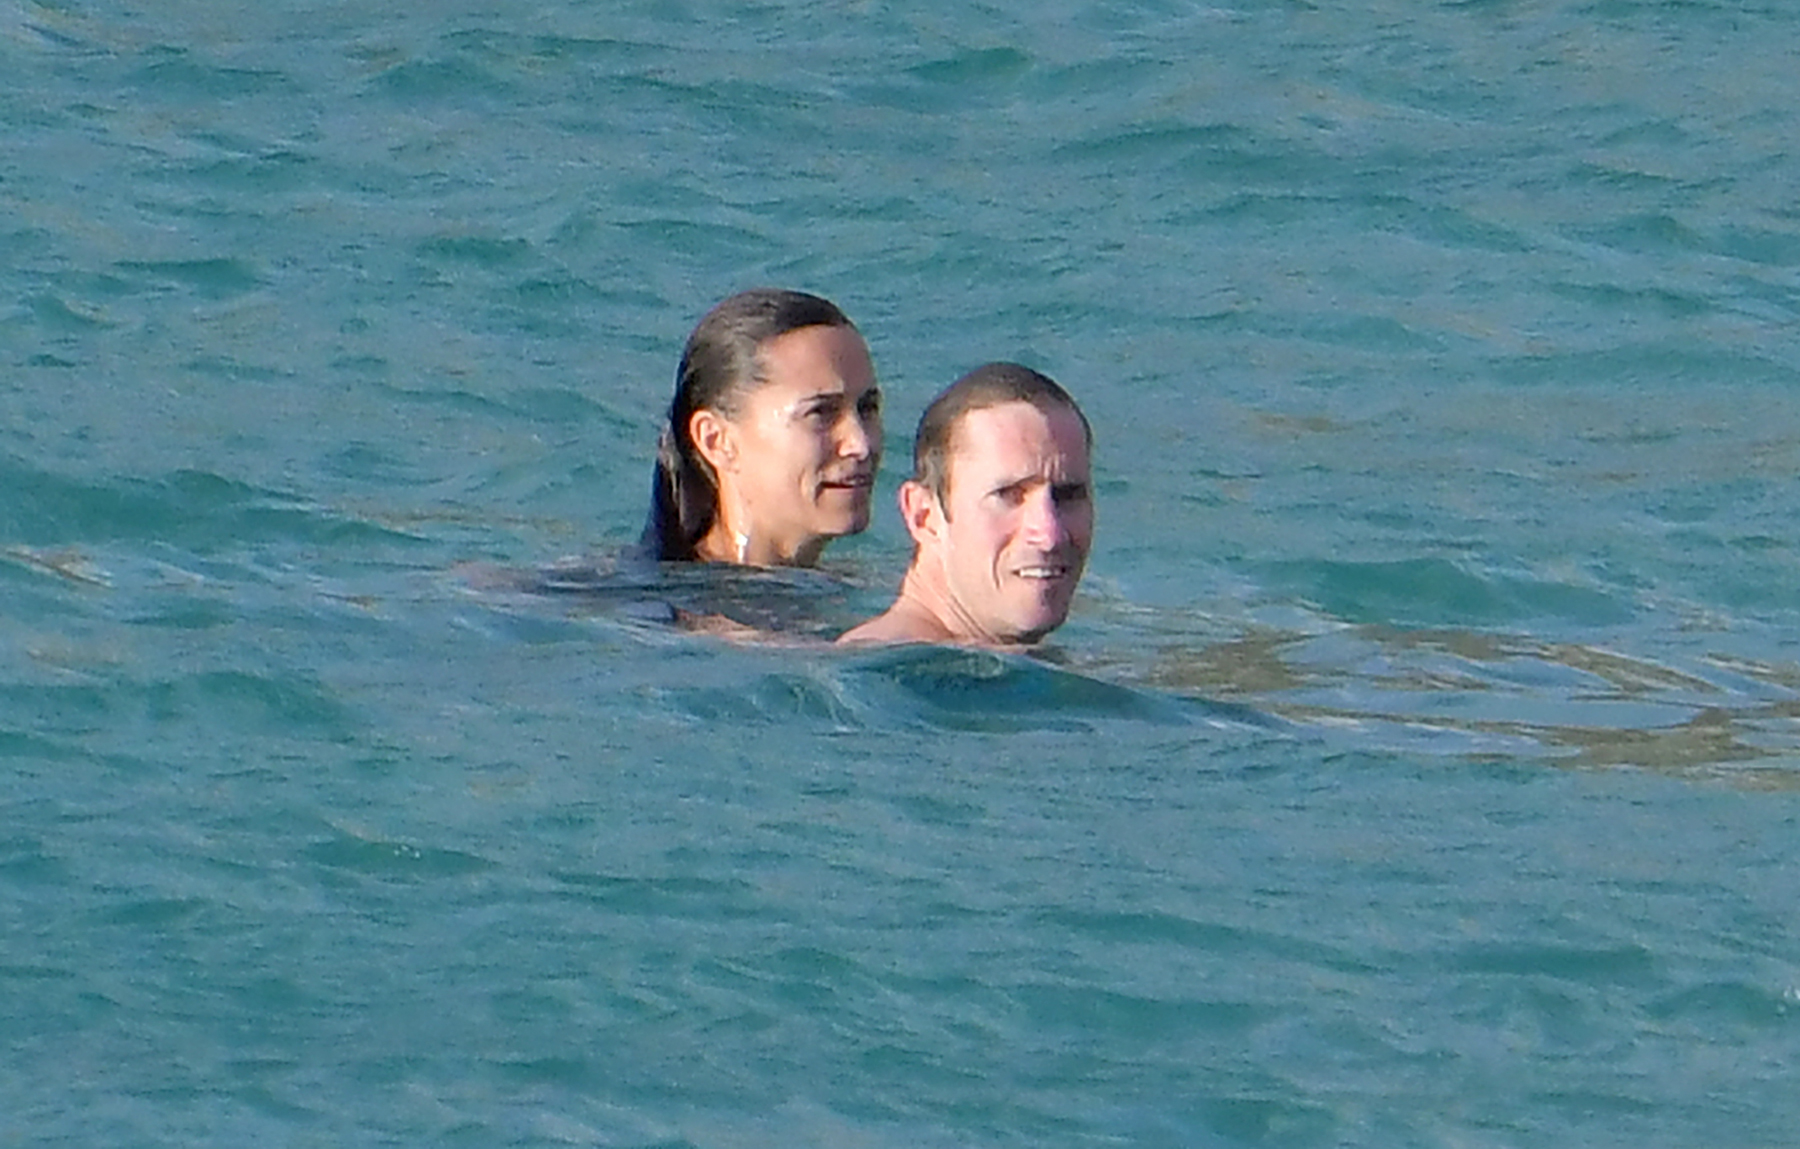 Pippa-Middleton-white-bikini-st-barts-James-Matthews - The couple were neck-deep in the water as they enjoyed some quality time sans their 2-month-old son. Us Weekly confirmed in October that the two had welcomed their first child.